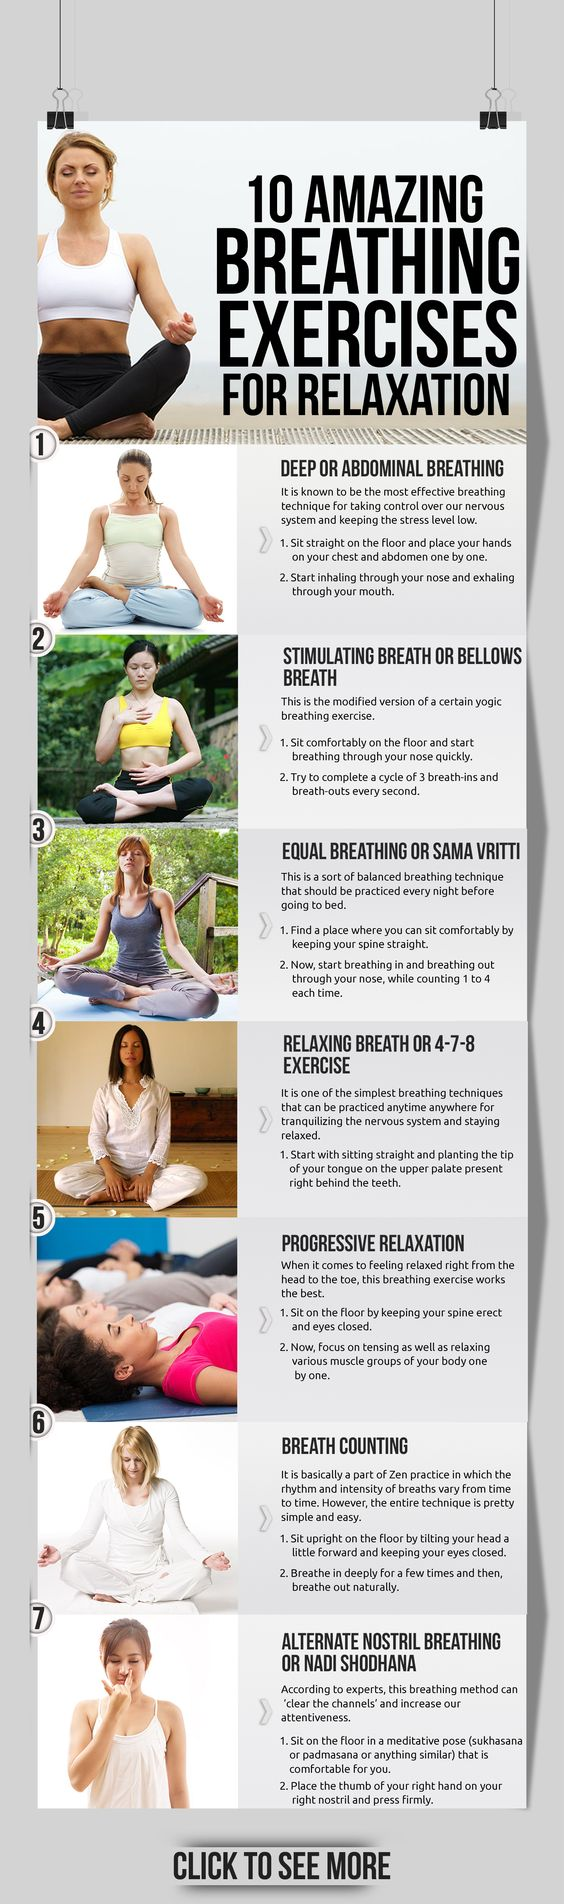 amazing breathing exercises for relaxation